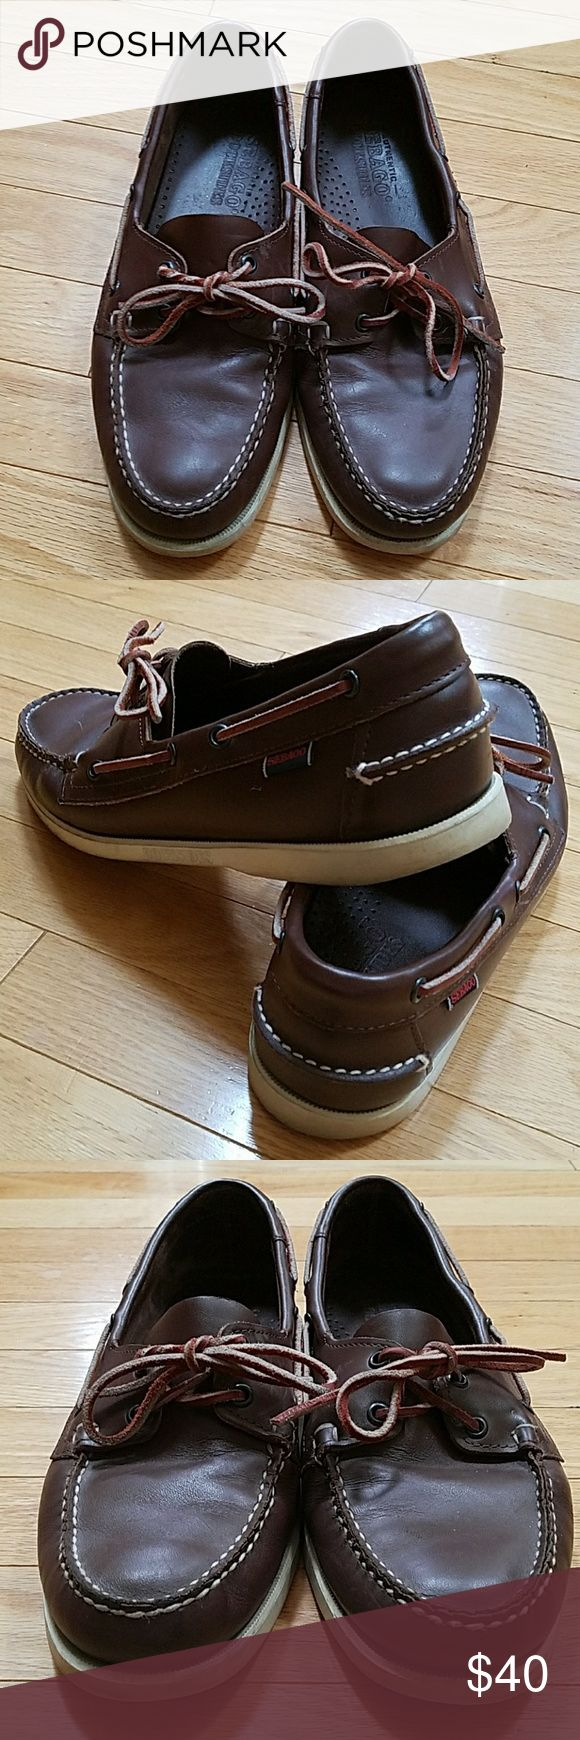 Sebago Docksiders Brown Leather Boat Shoes Sebago Docksiders  Brown Leather Men's size 10  Great for boating or casual wear ECU Sebago Shoes Boat Shoes